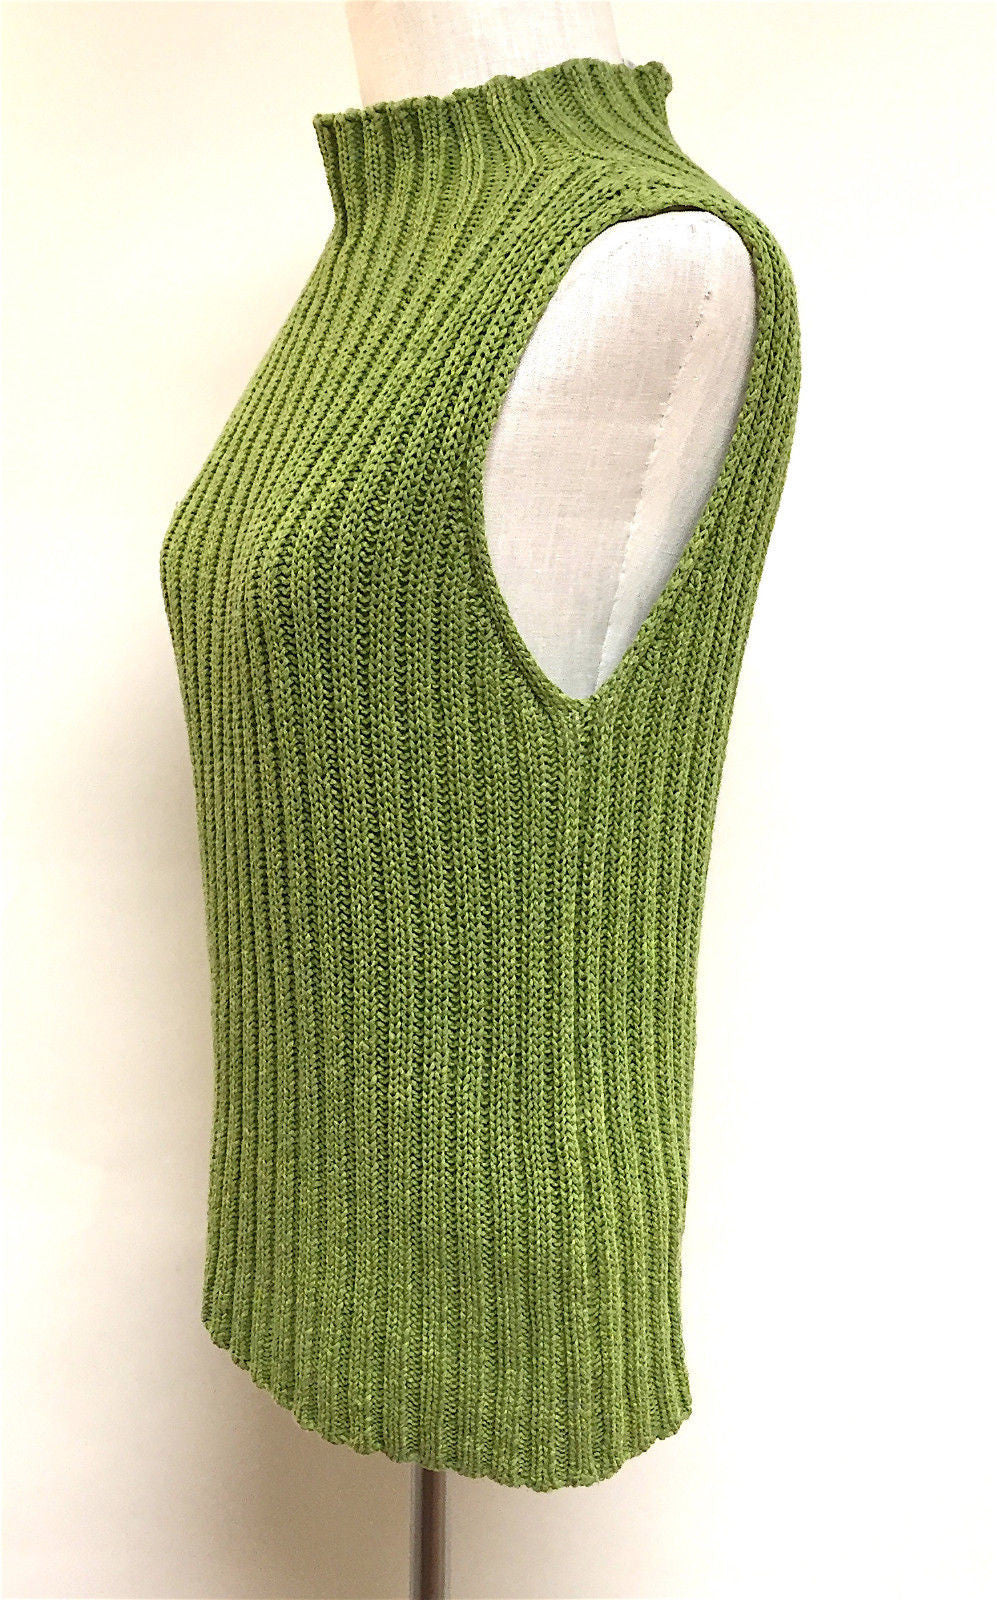 bisbiz.com MAX MARA  Fern-Green Rib-Knit Cotton Sleeveless Moc-Turtleneck Sweater Top Size: M - Bis Luxury Resale